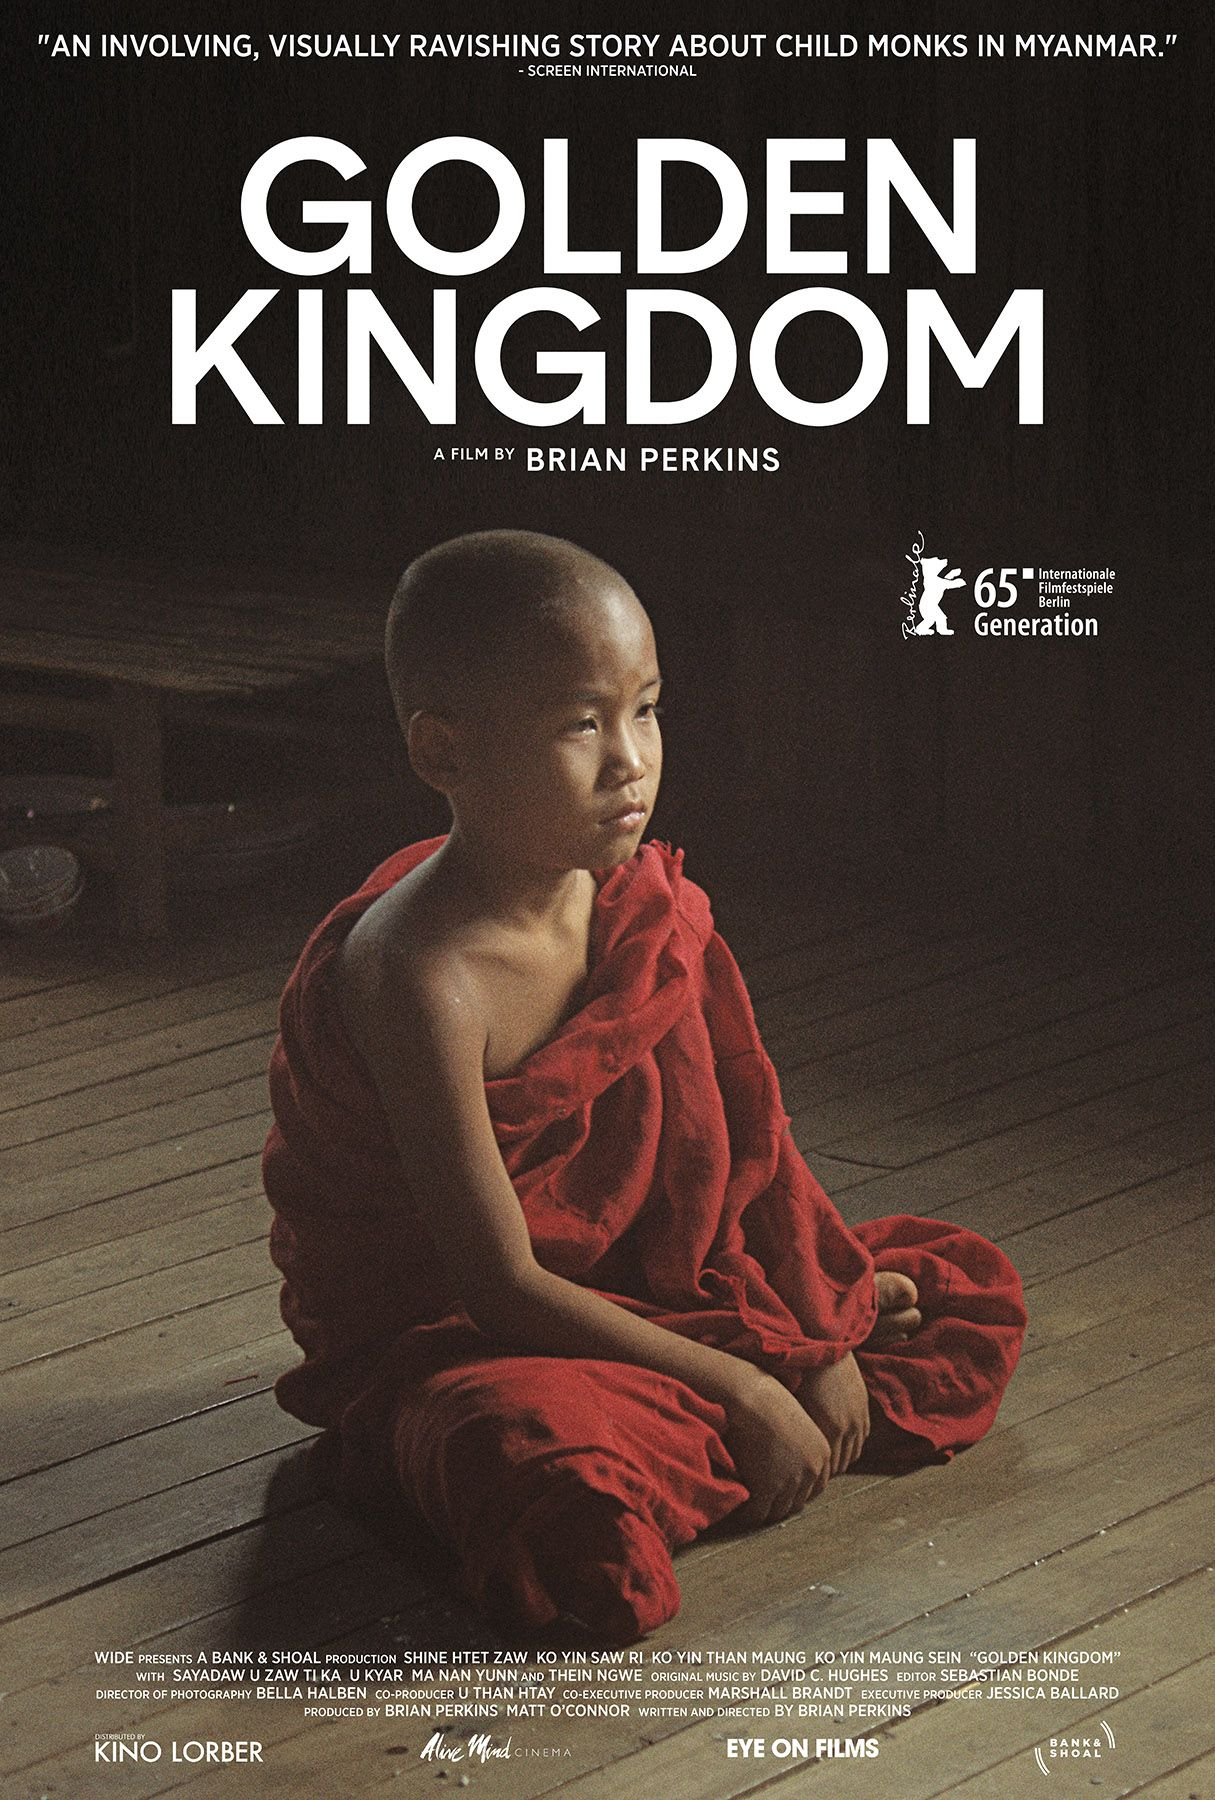 Golden Kingdom Is A Narrative Feature Film About Four Orphan Boys Novice Monks Living In A Buddhist Monastery In A Remote Part Of Northeast Burma